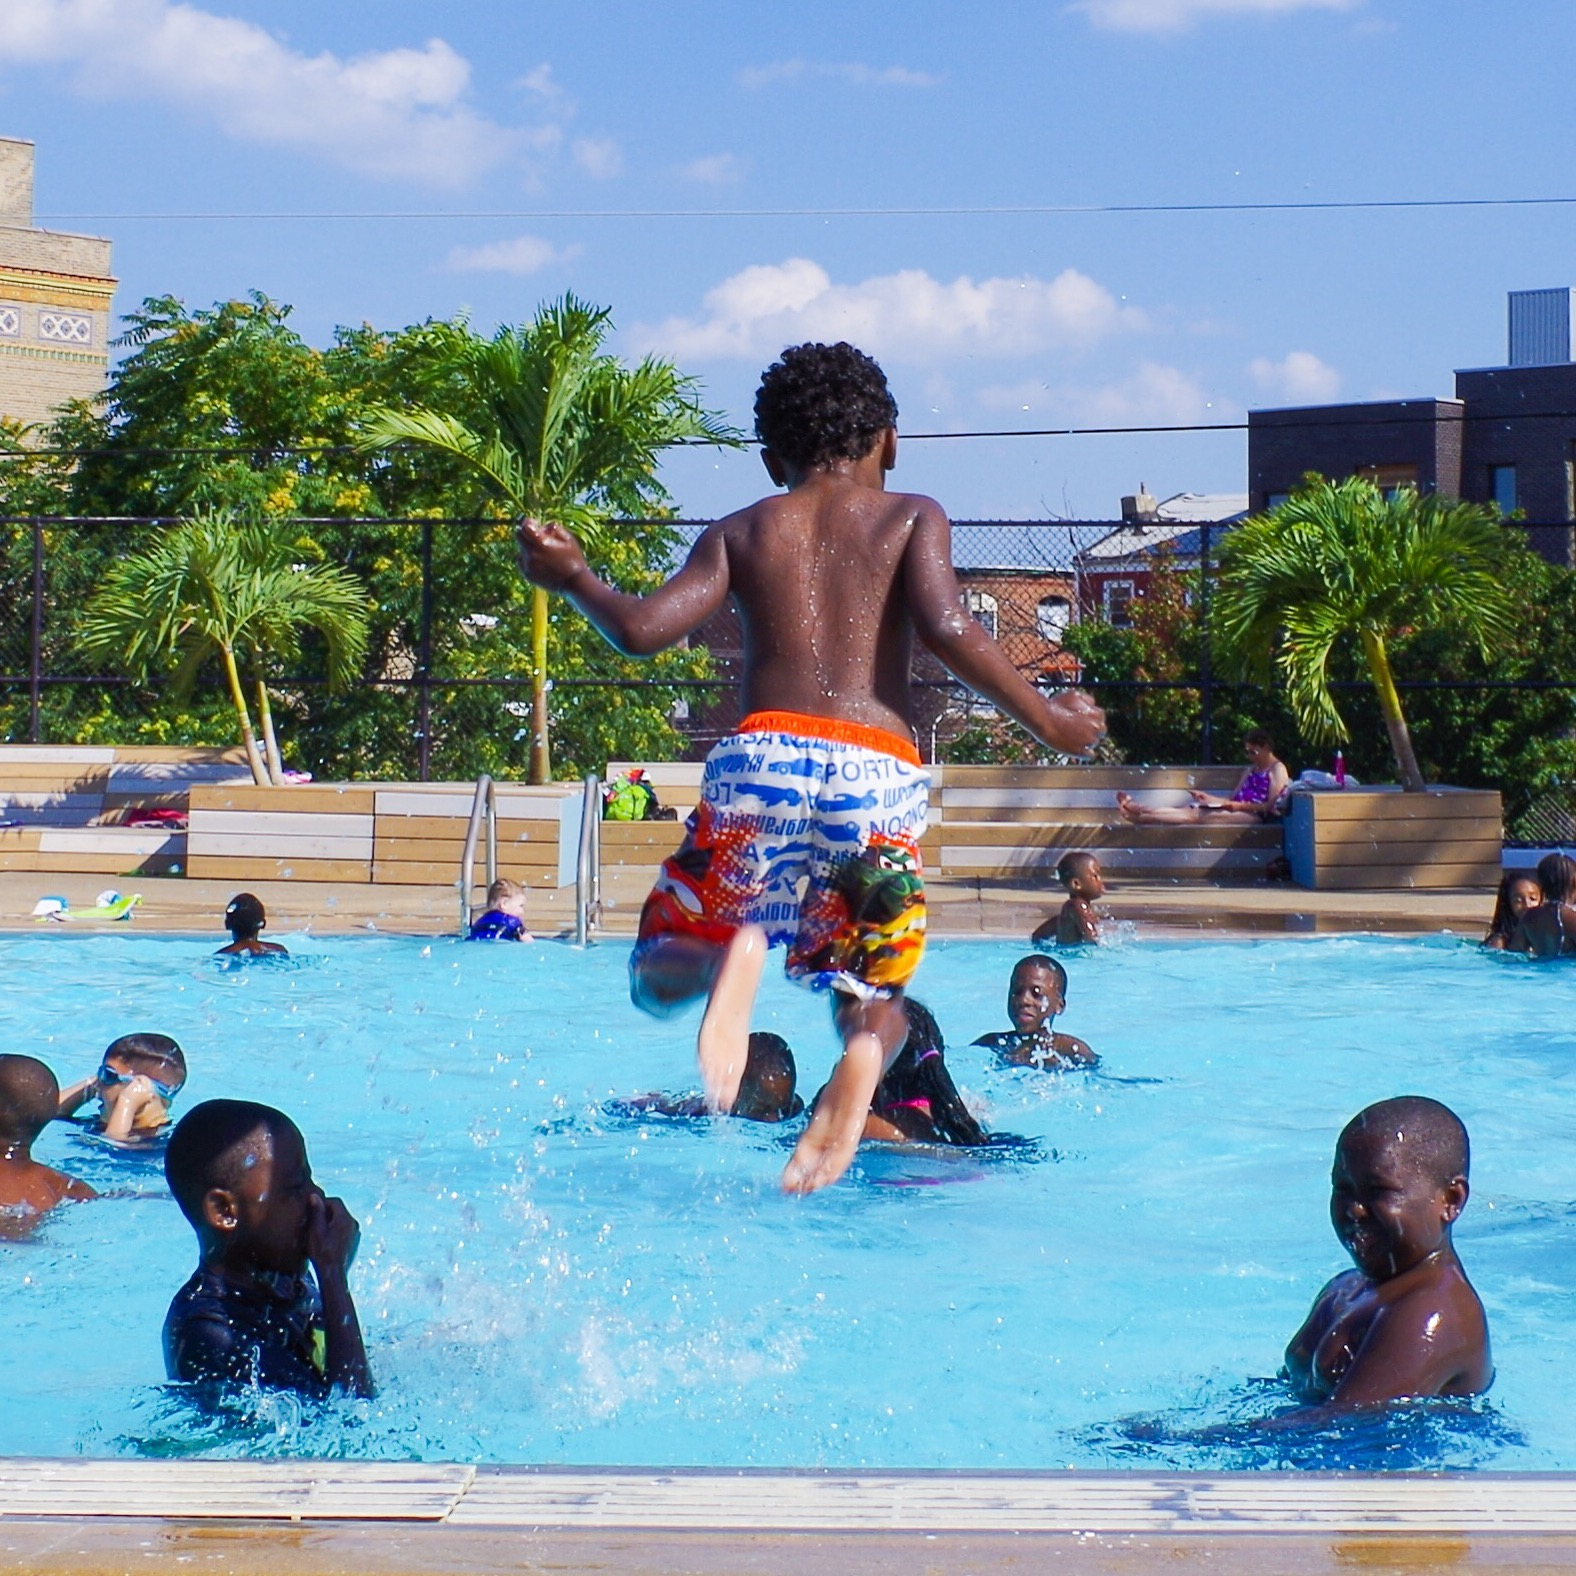 Philadelphia's Pop-Up Pool Project added amenities to a lackluster public pool and brought a community together.